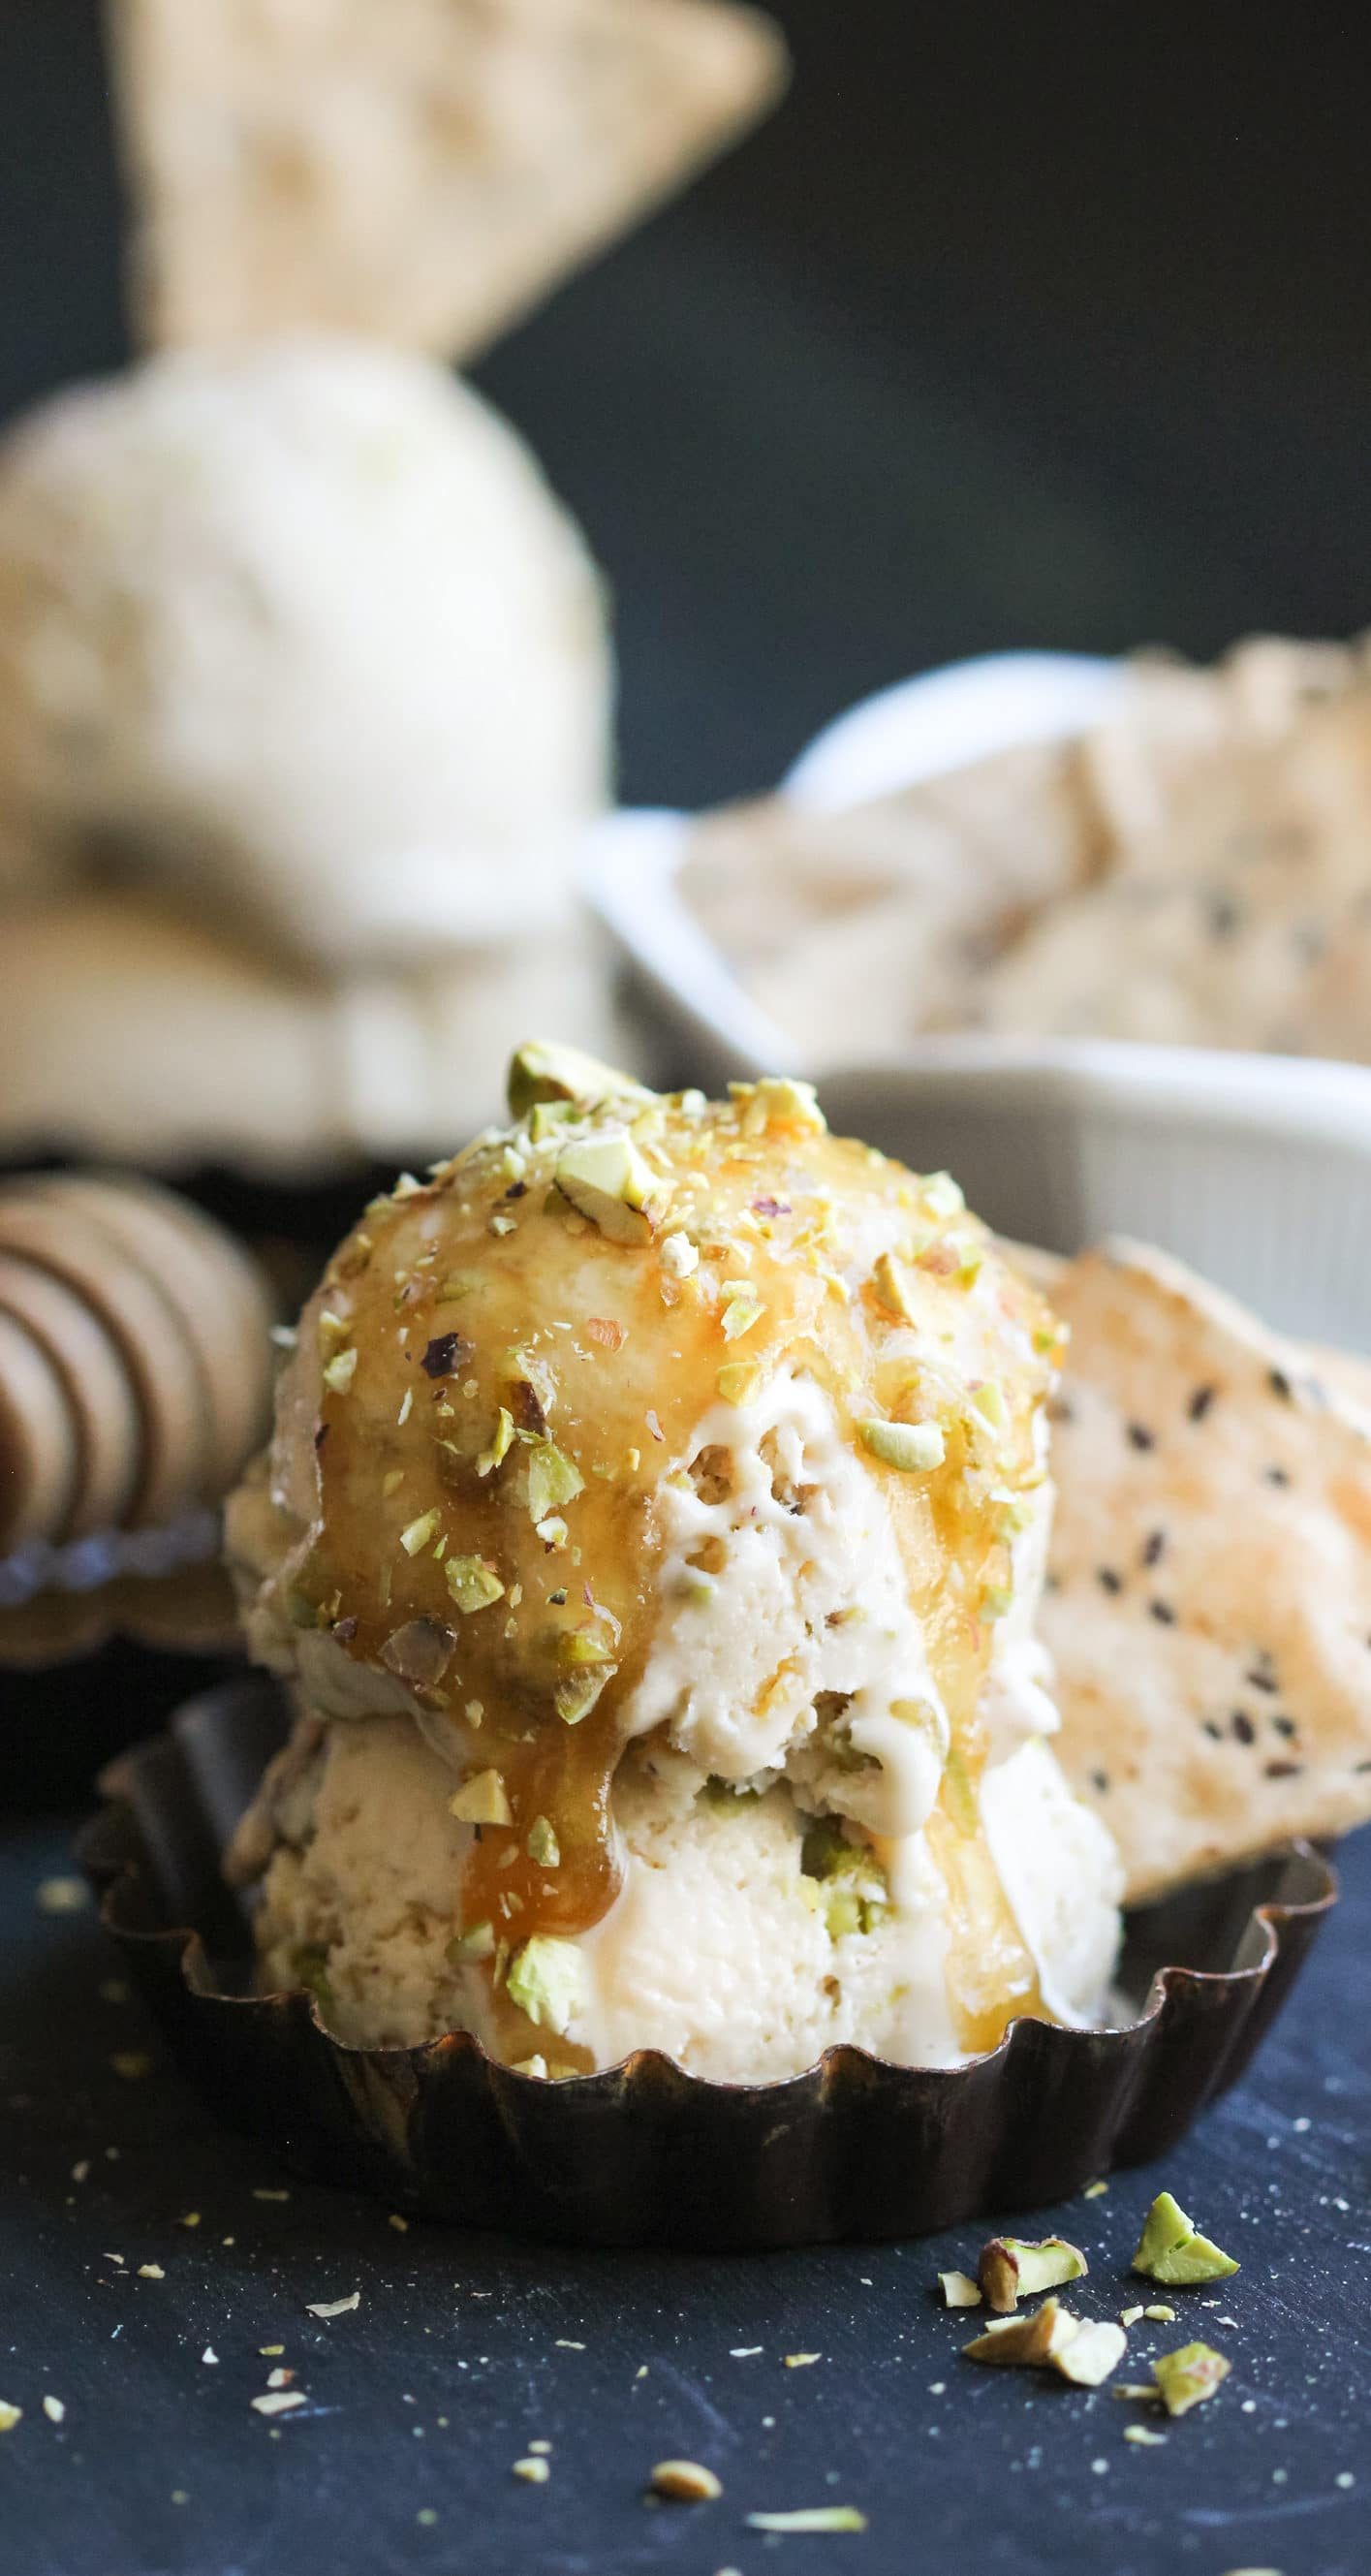 This deliciously sweet and creamy Healthy Baklava Ice Cream is laced with raw honey and studded with chopped pistachios and a crunchier, crispier, and more nutritious gluten-free substitute to phyllo dough. It seriously tastes like baklava swirled into ice cream! You'd never know it's refined sugar free, gluten free, and high protein! -- Healthy Dessert Recipes with sugar free, low calorie, low fat, high protein, gluten free, dairy free, and vegan options at the Desserts With Benefits Blog (www.DessertsWithBenefits.com)